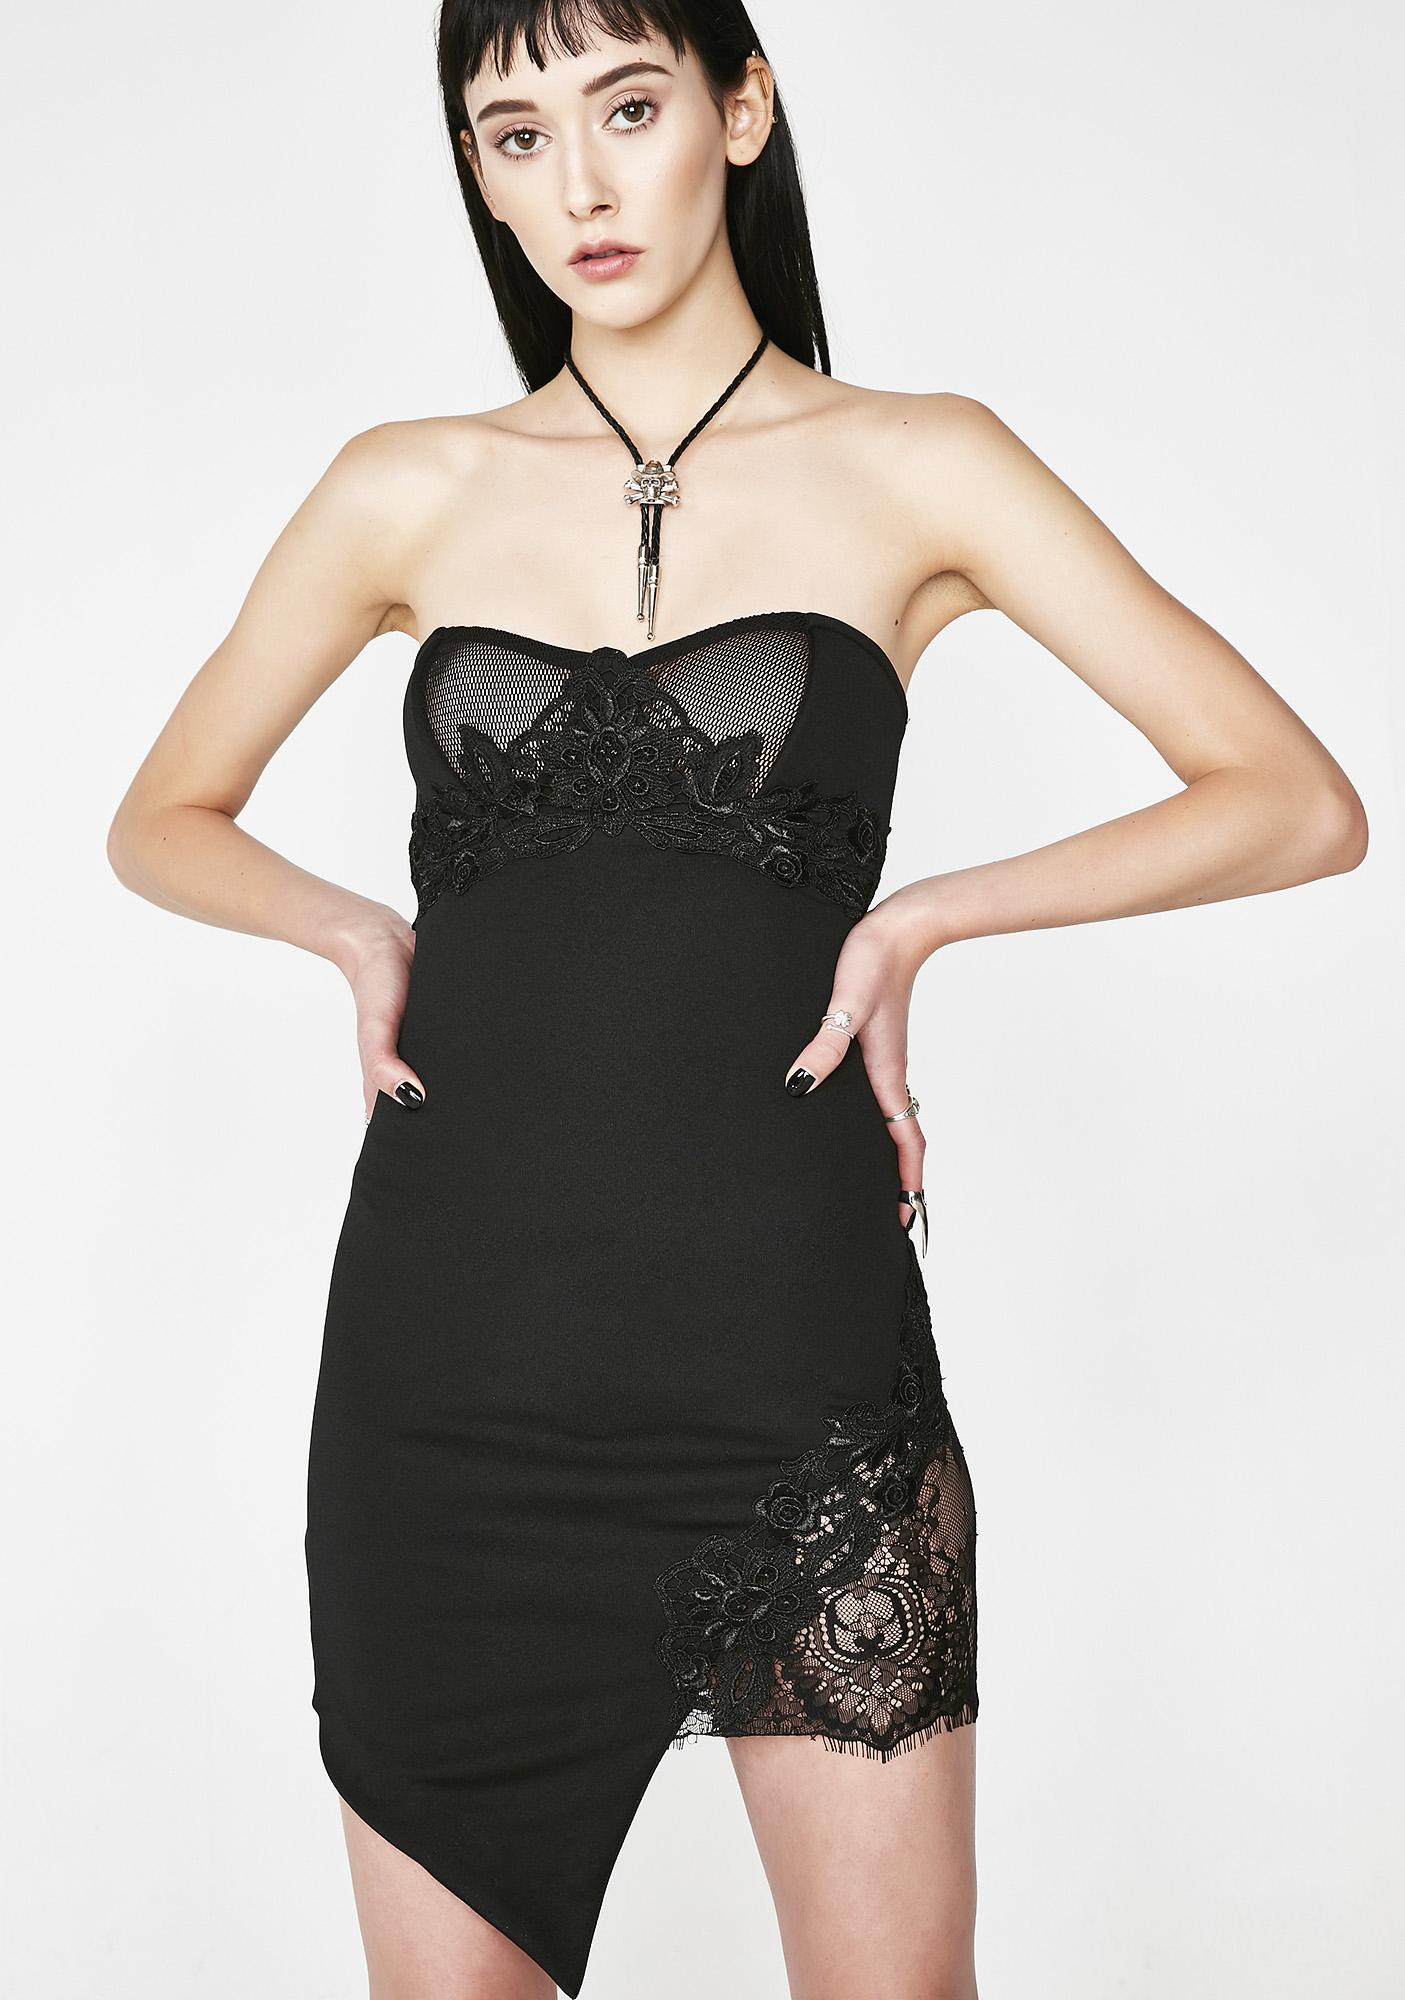 Kiki Riki Under Pressure Strapless Dress